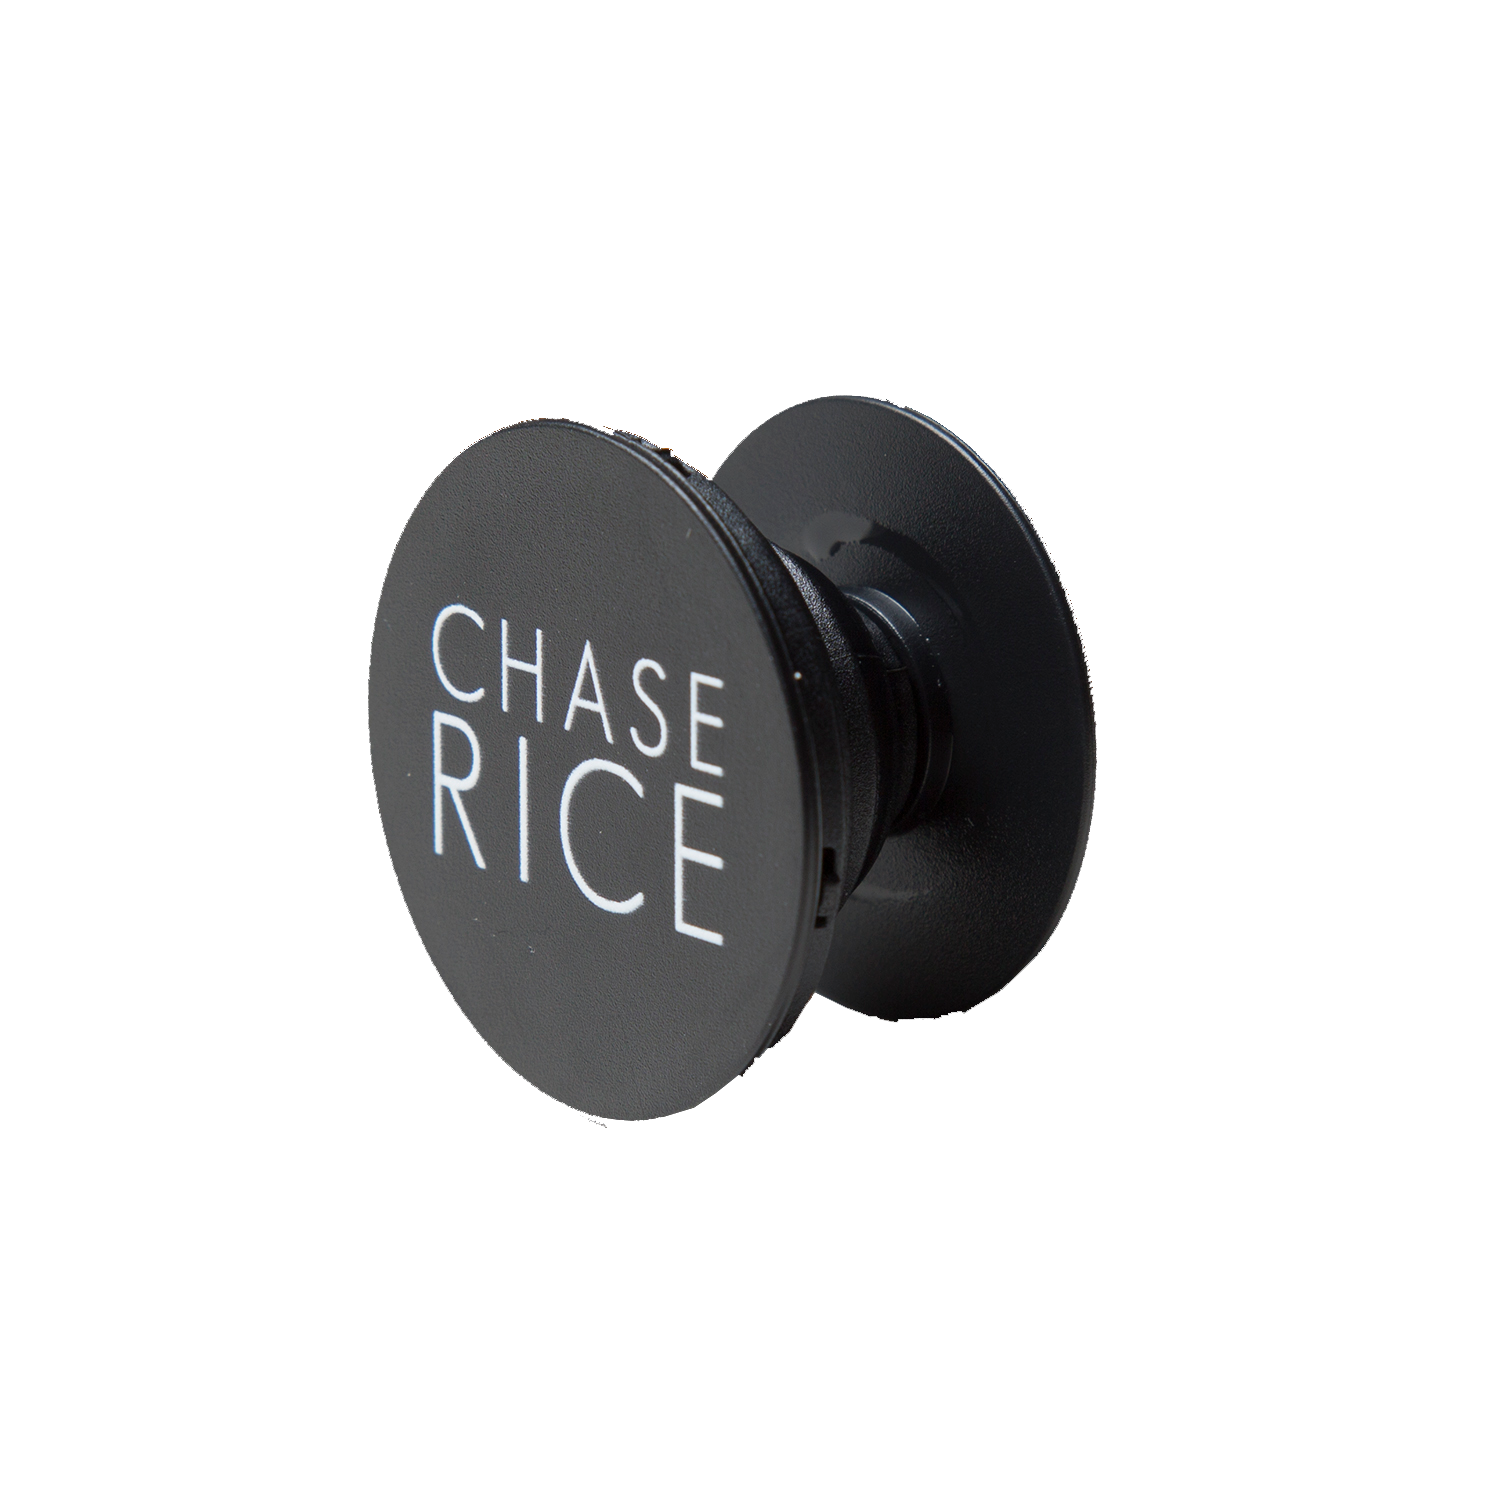 Chase Rice Collapsible Phone Grip - Black